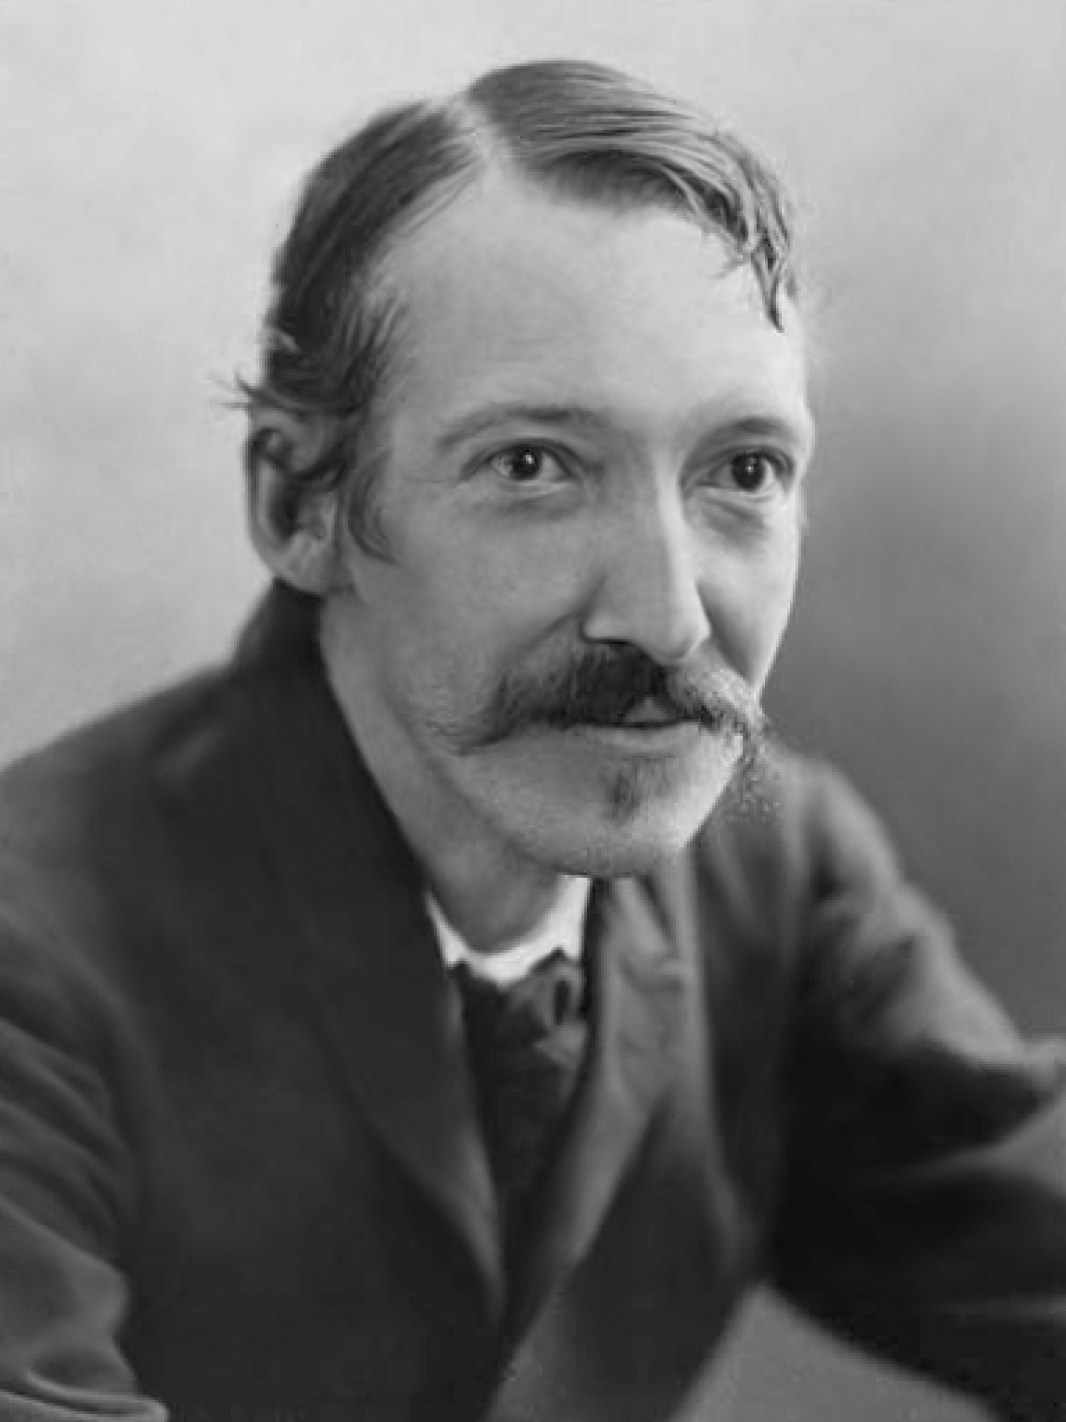 A black and white photograph of Robert Louis Stevenson, author of 'Travels with a Donkey in the Cevennes'